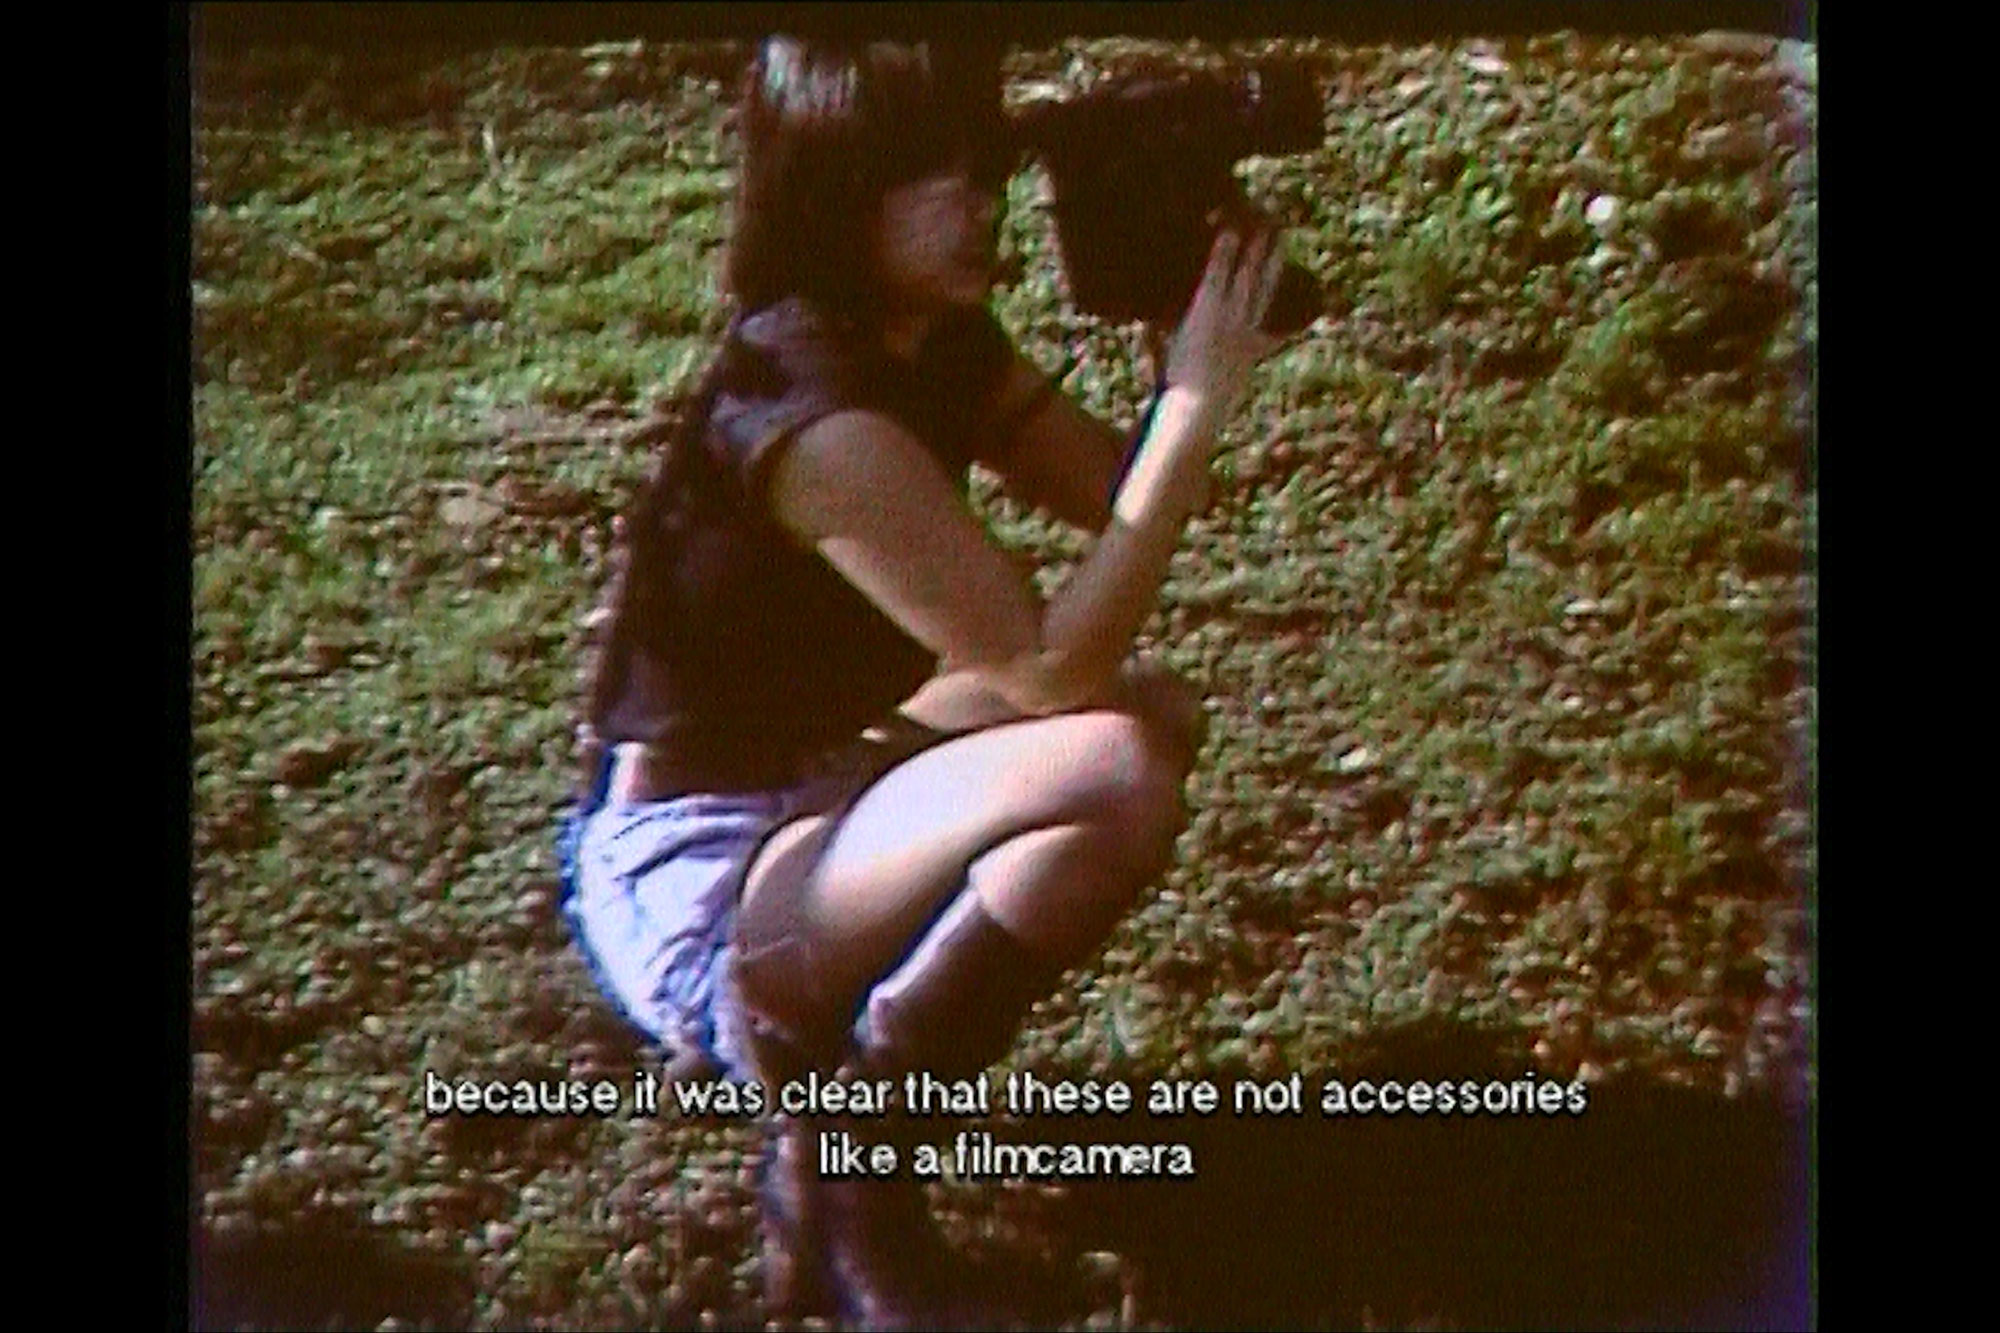 an asian woman squatting in the grass with a VHS camera.